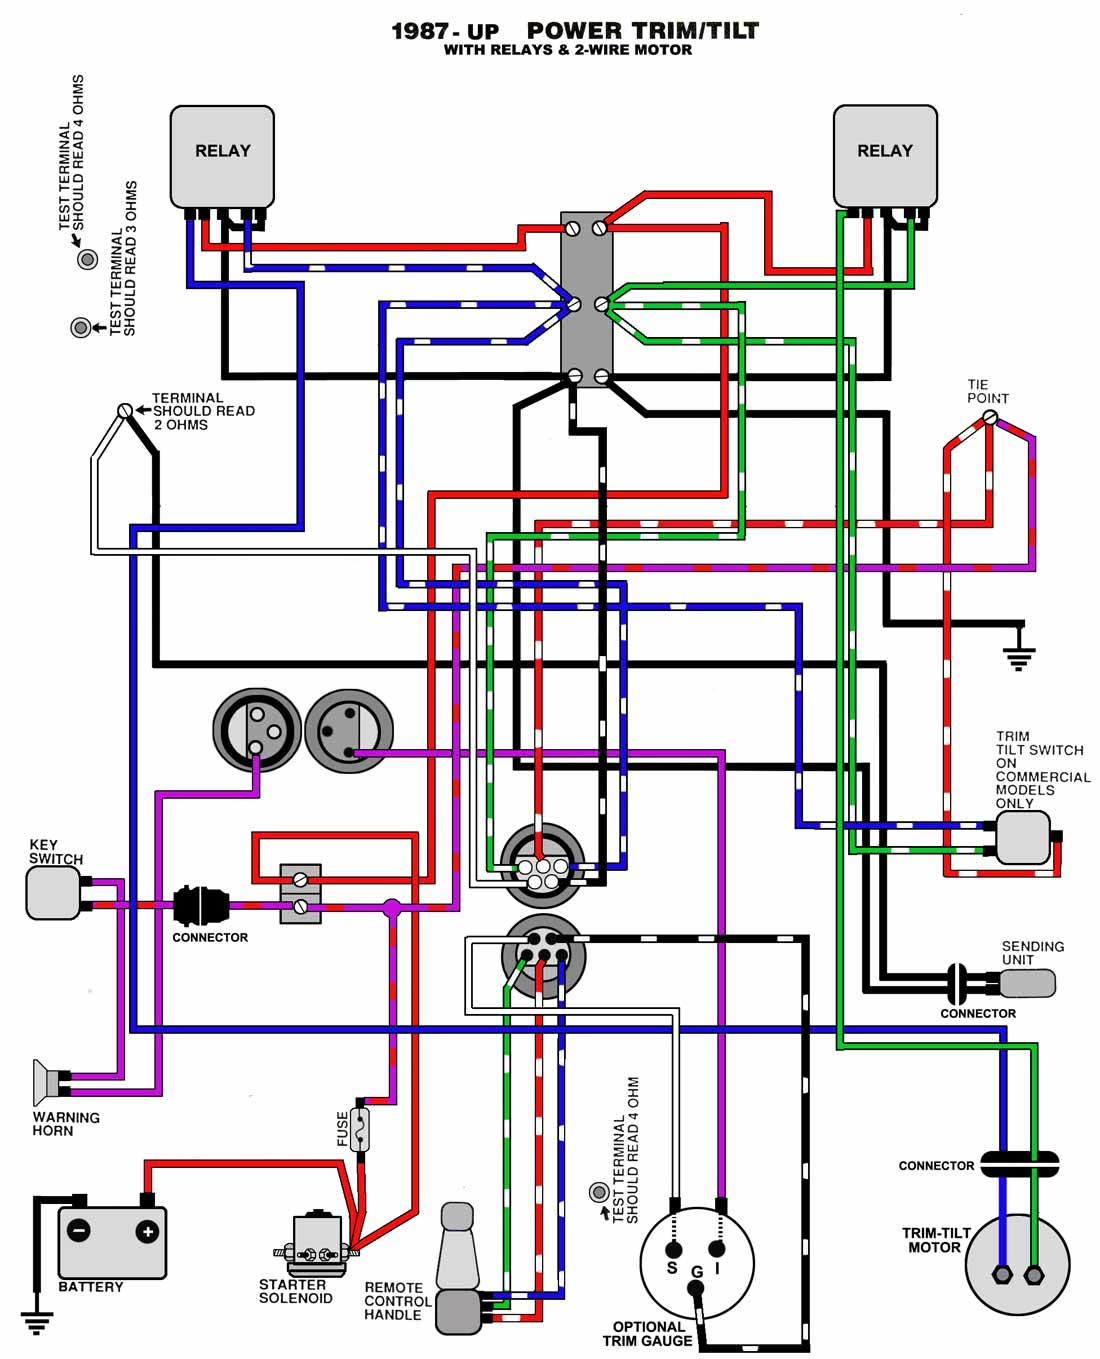 TnT_87_UP mastertech marine evinrude johnson outboard wiring diagrams  at virtualis.co